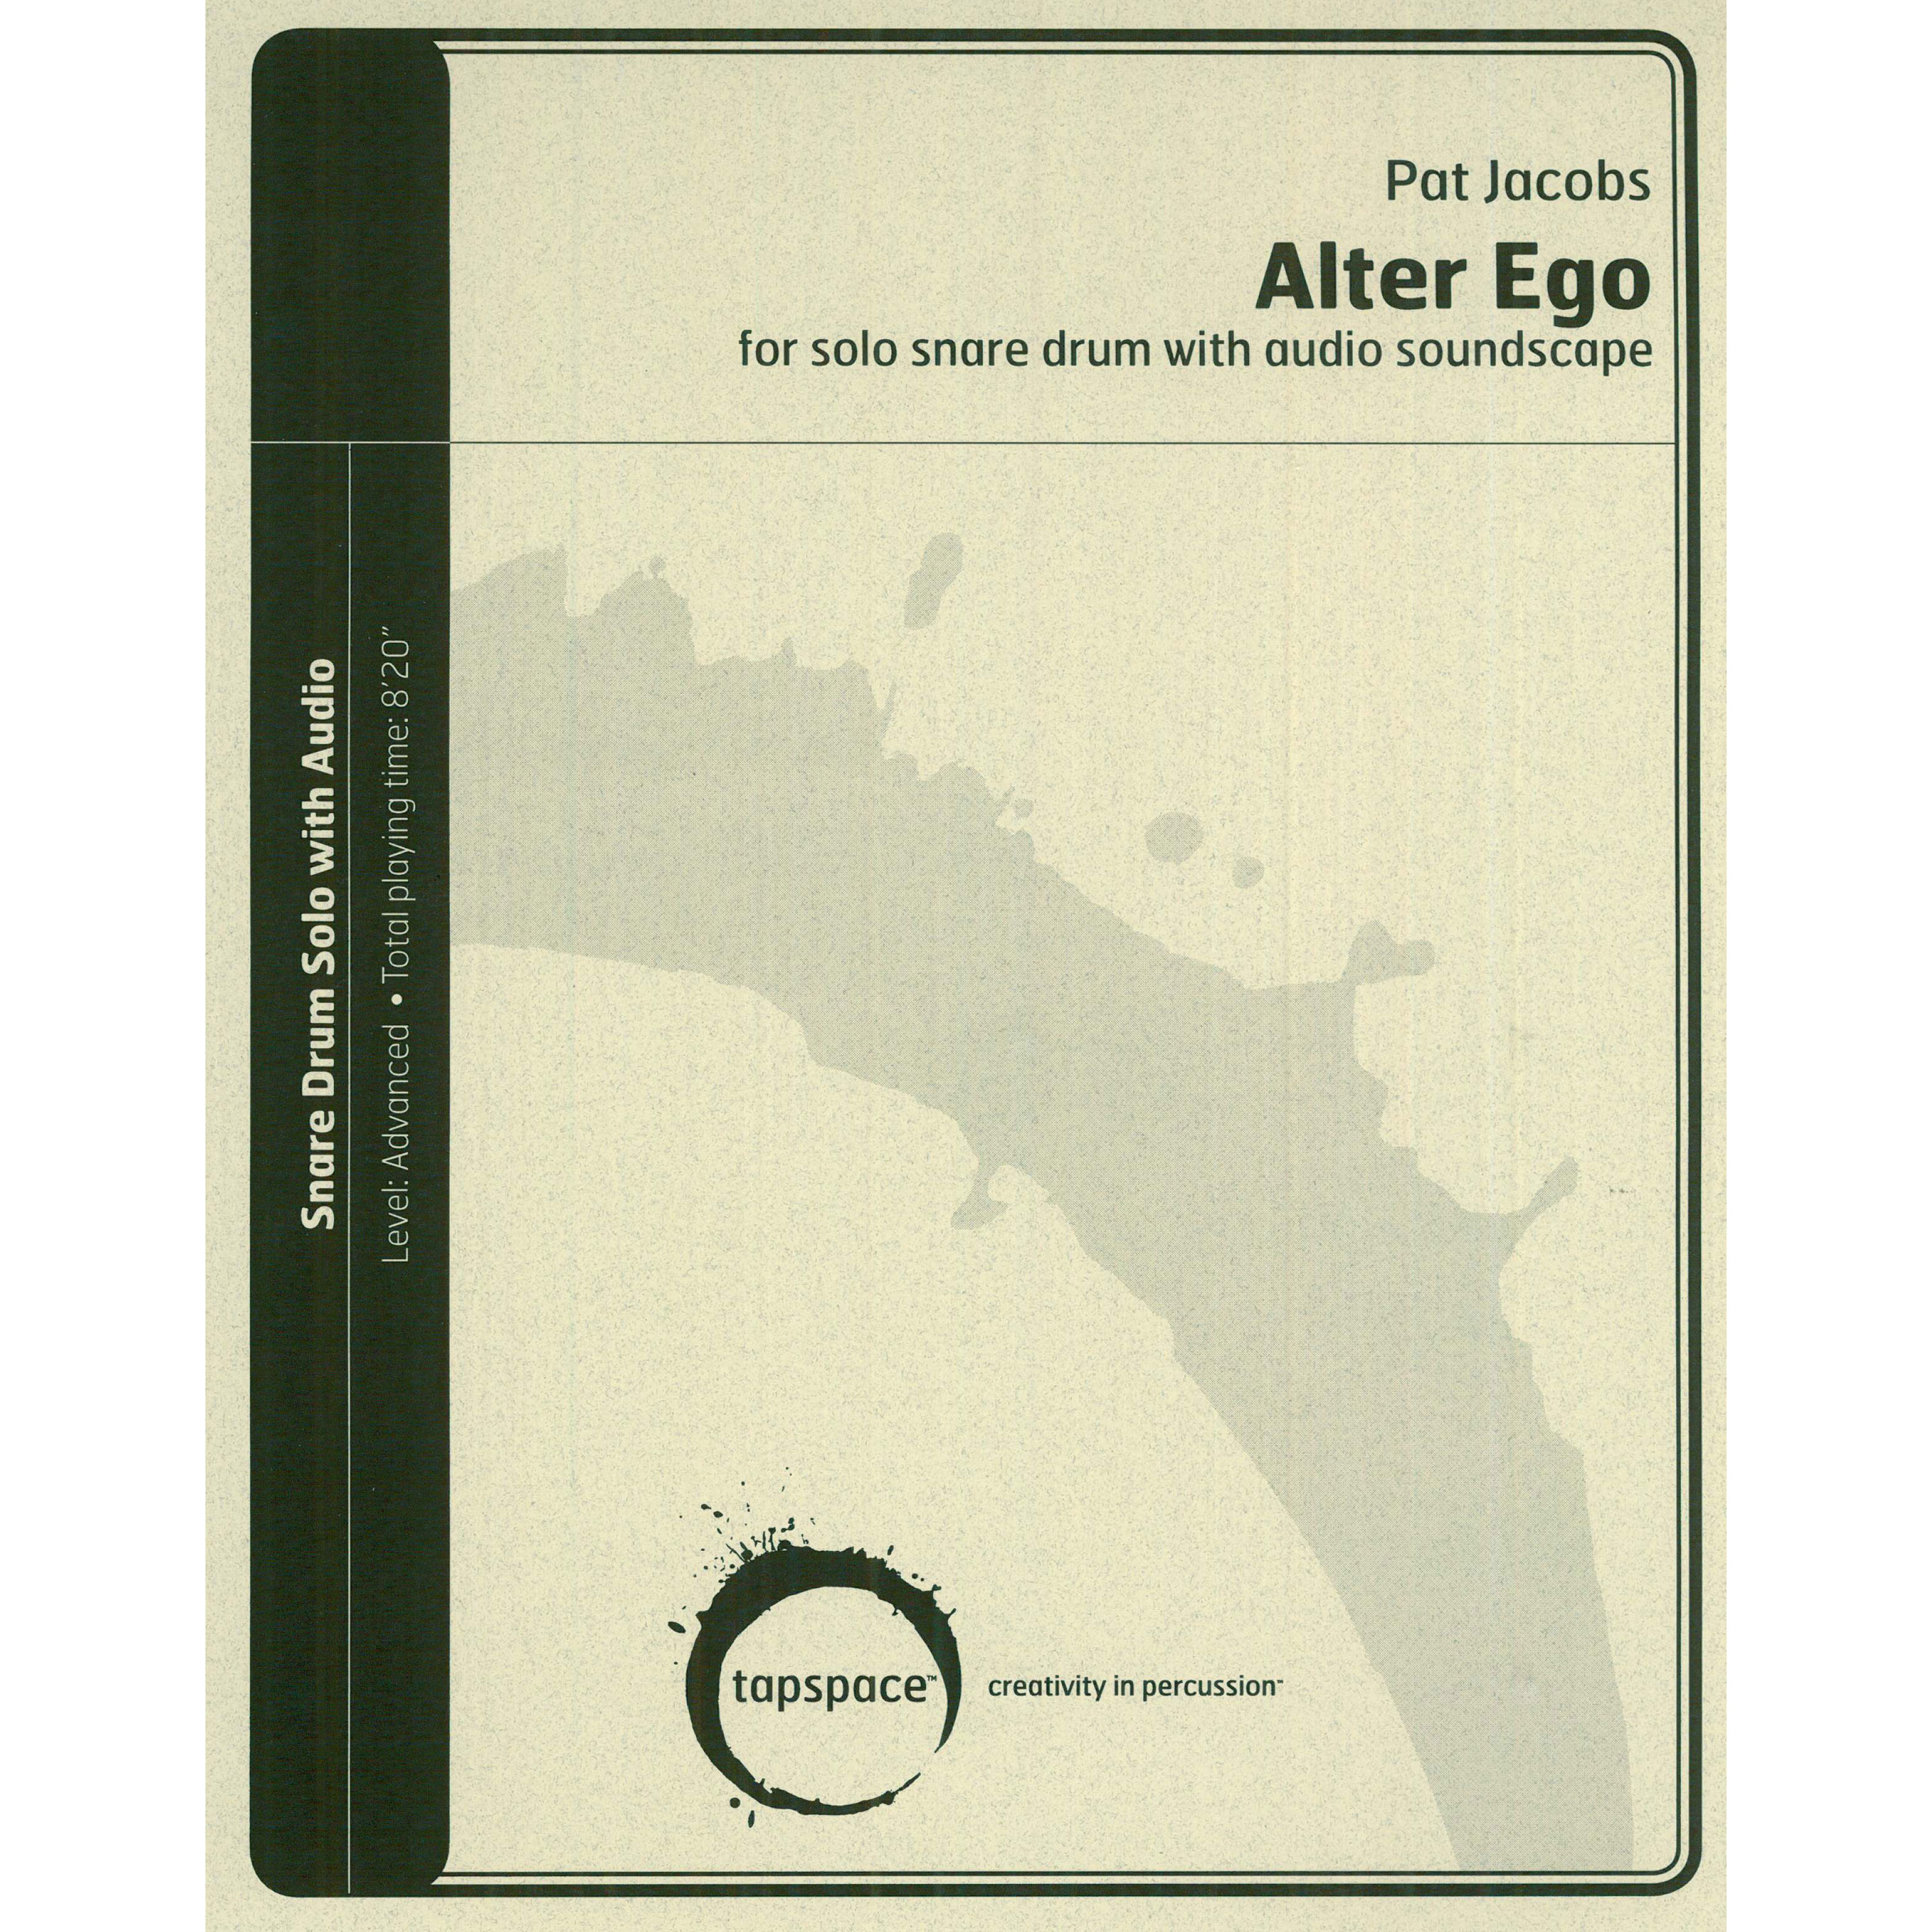 Alter Ego by Pat Jacobs